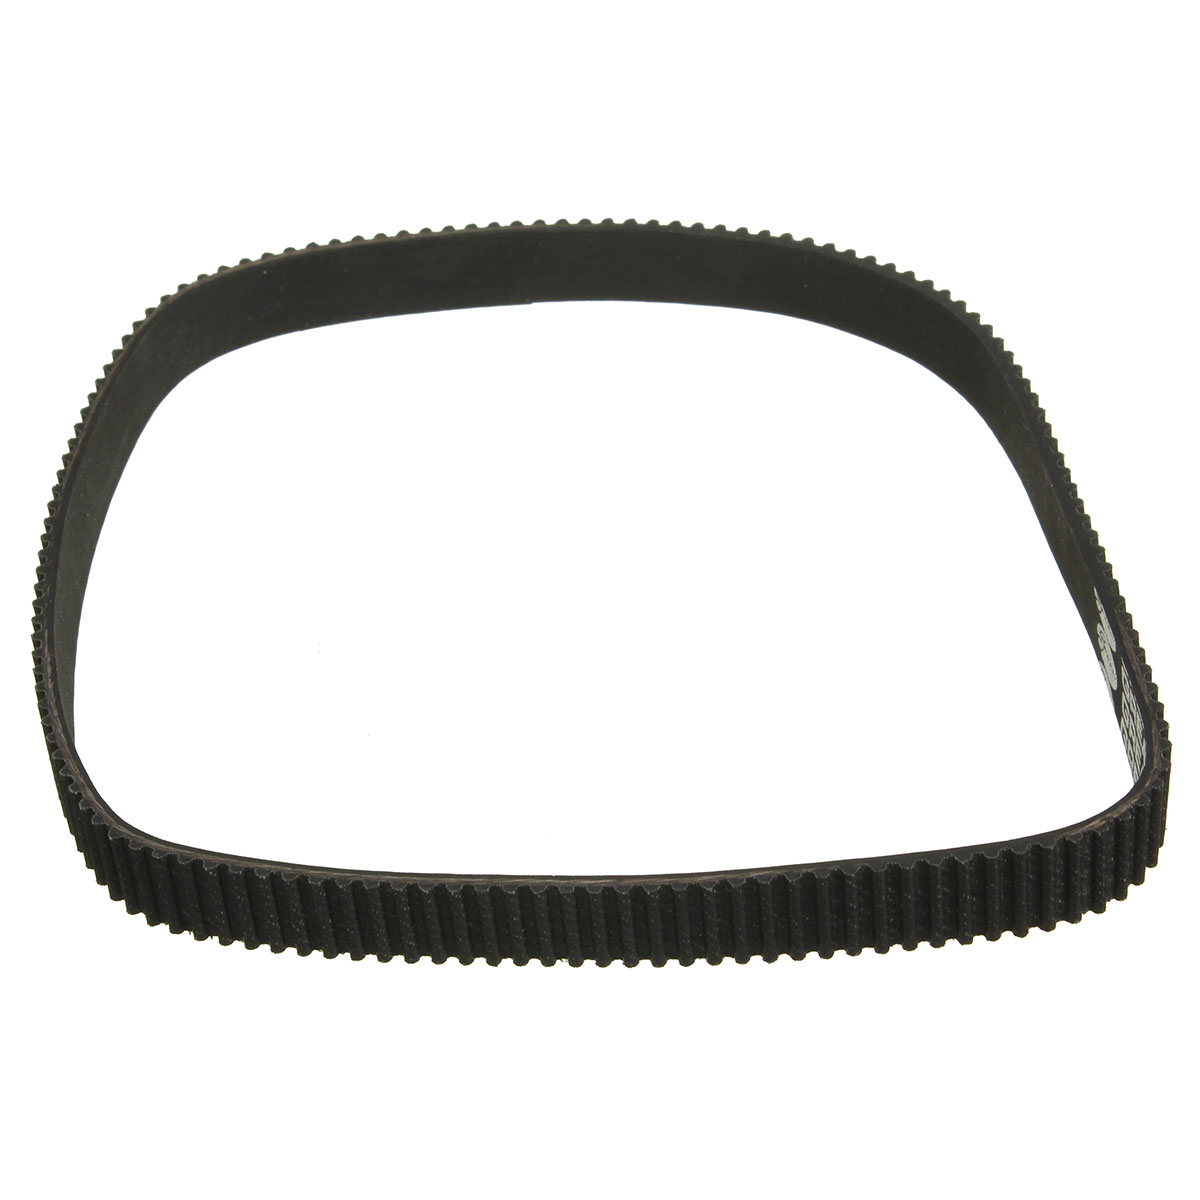 Replacement 3M-420-12 Black Rubber Driving Belt Round Belt Line Ring Electric Bike E-bike Scooter DIYReplacement 3M-420-12 Black Rubber Driving Belt Round Belt Line Ring Electric Bike E-bike Scooter DIY